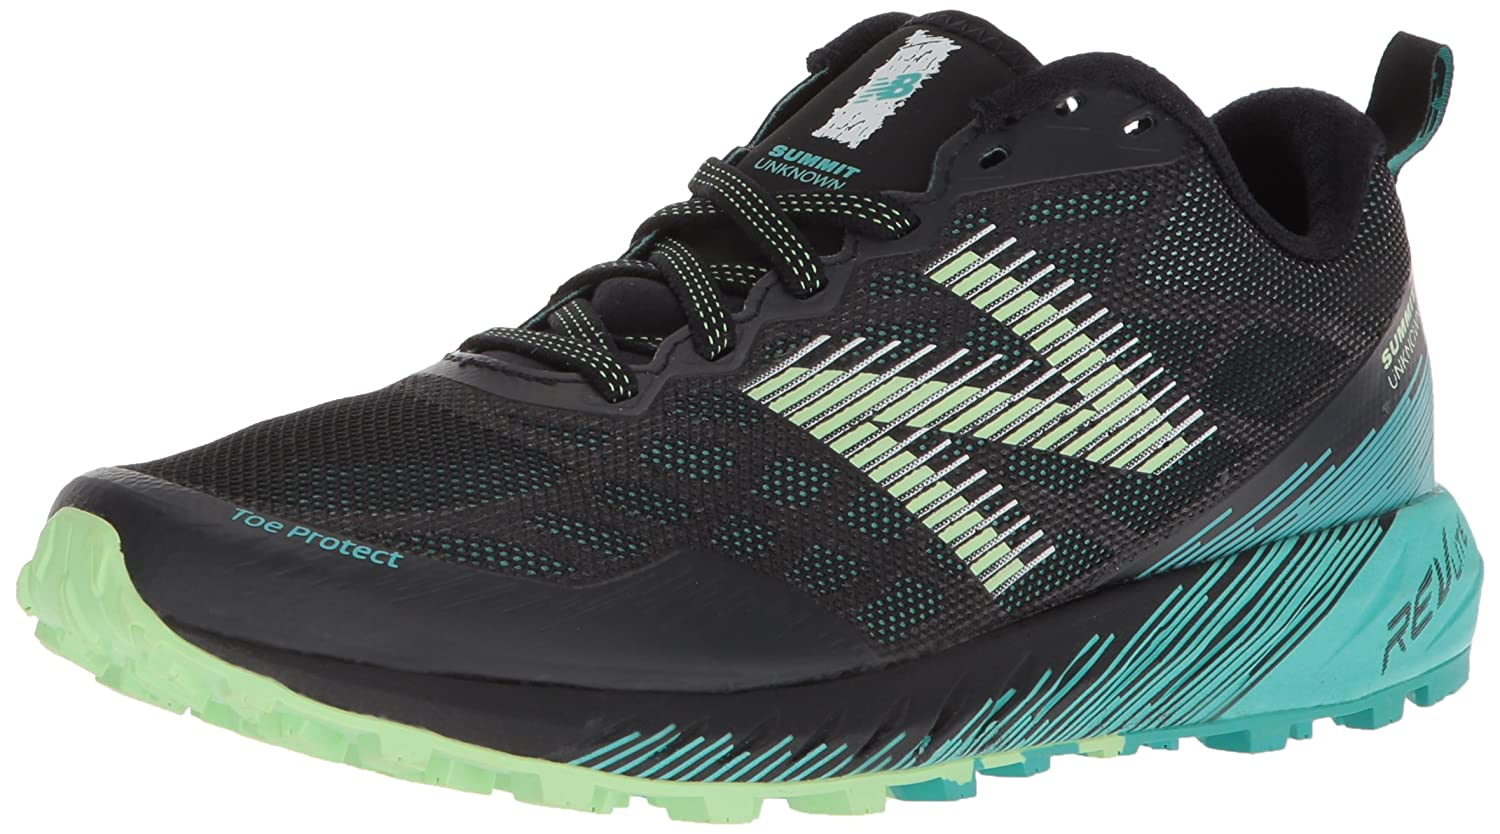 New Balance Femme Summit Unknown, Running Femme New Green B07DK2N72D/Black 6e36162 - therethere.space